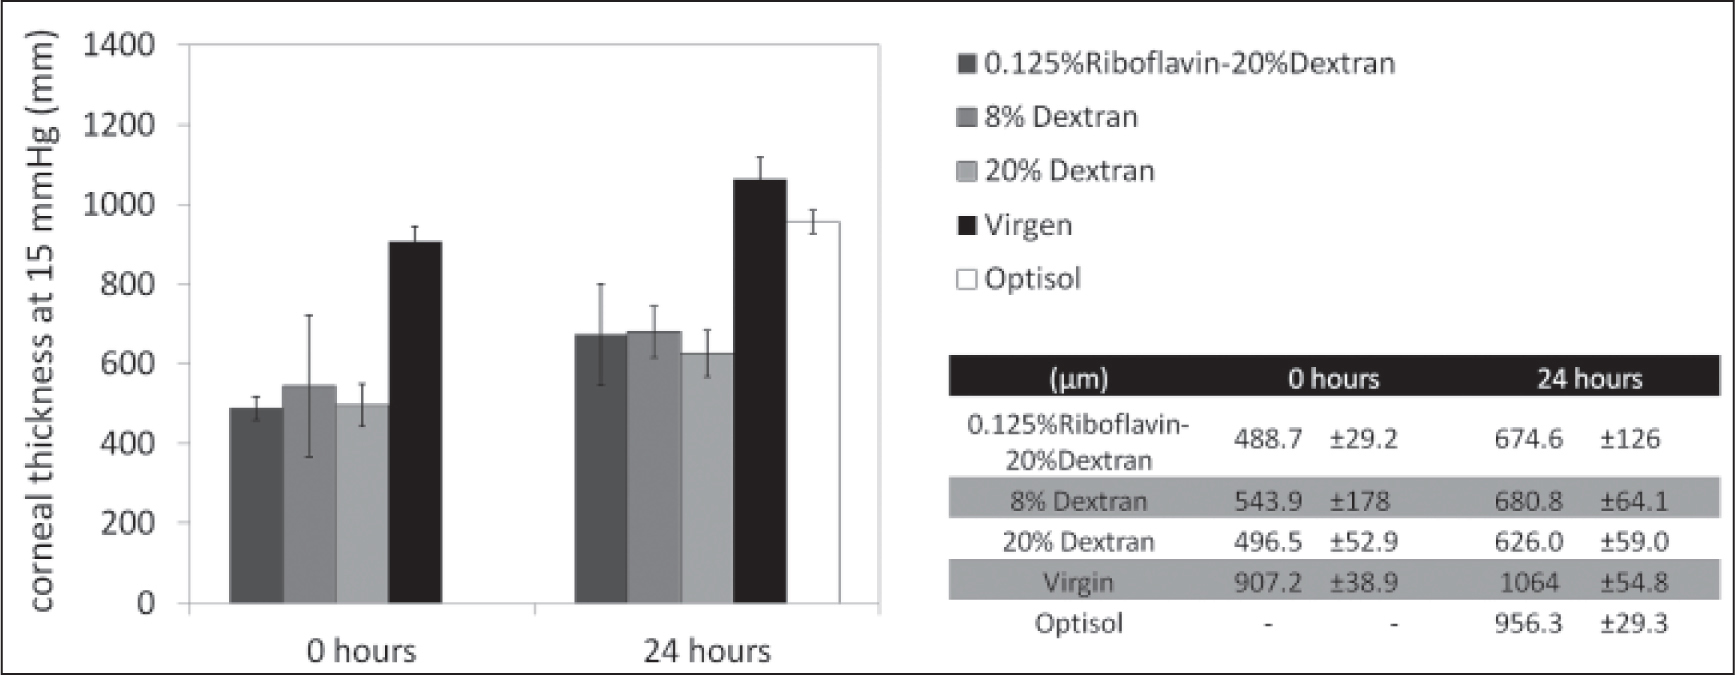 Initial corneal thickness before intraocular pressure variation for all tested conditions at 0 and 24 hours.